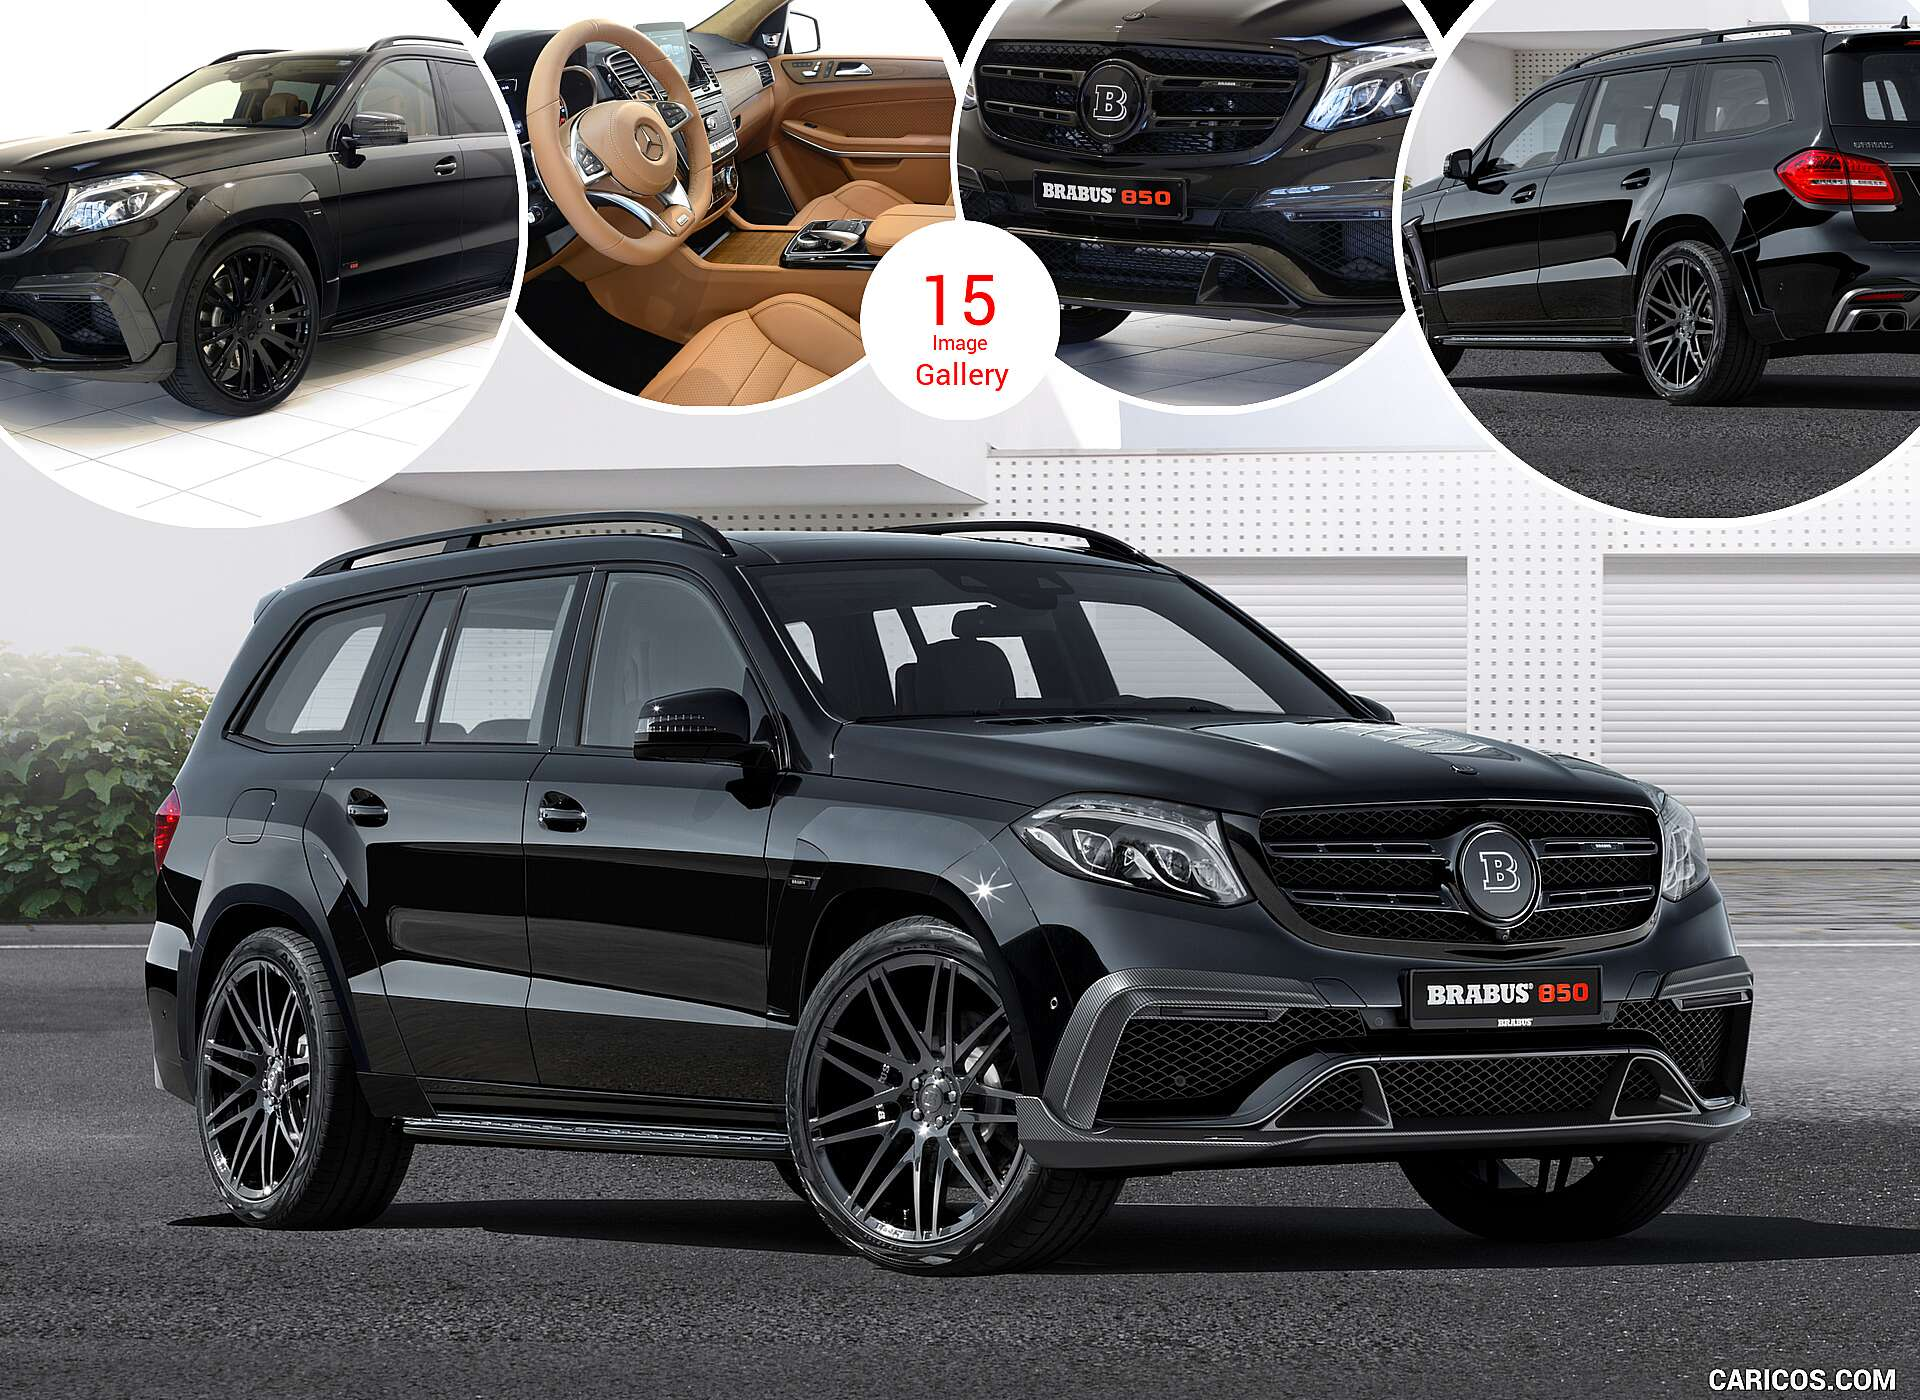 2017 Brabus 850 Xl Widestar Based On Widebody Mercedes Benz Gls 63